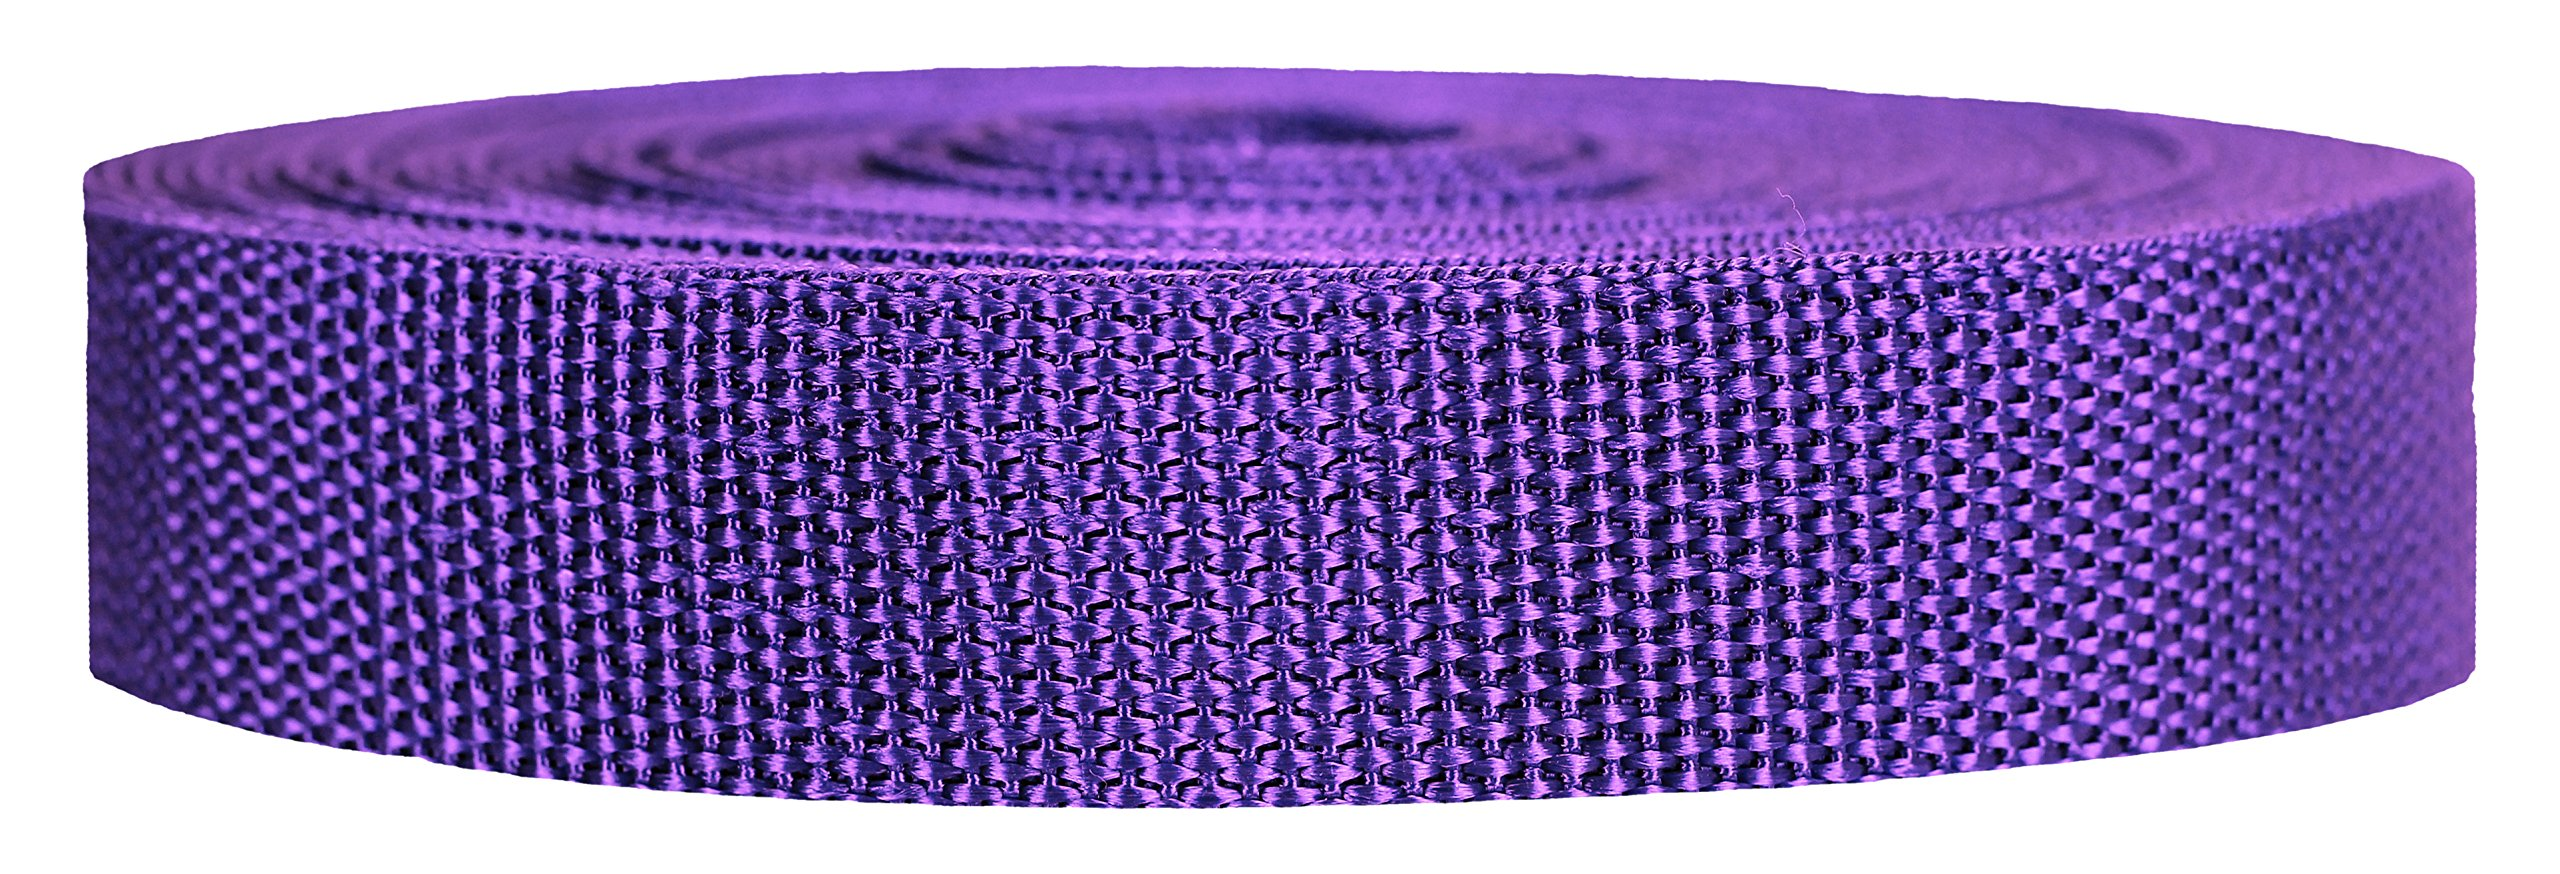 Strapworks Heavyweight Polypropylene Webbing - Heavy Duty Poly Strapping for Outdoor DIY Gear Repair, 1 Inch x 50 Yards - Purple by Strapworks